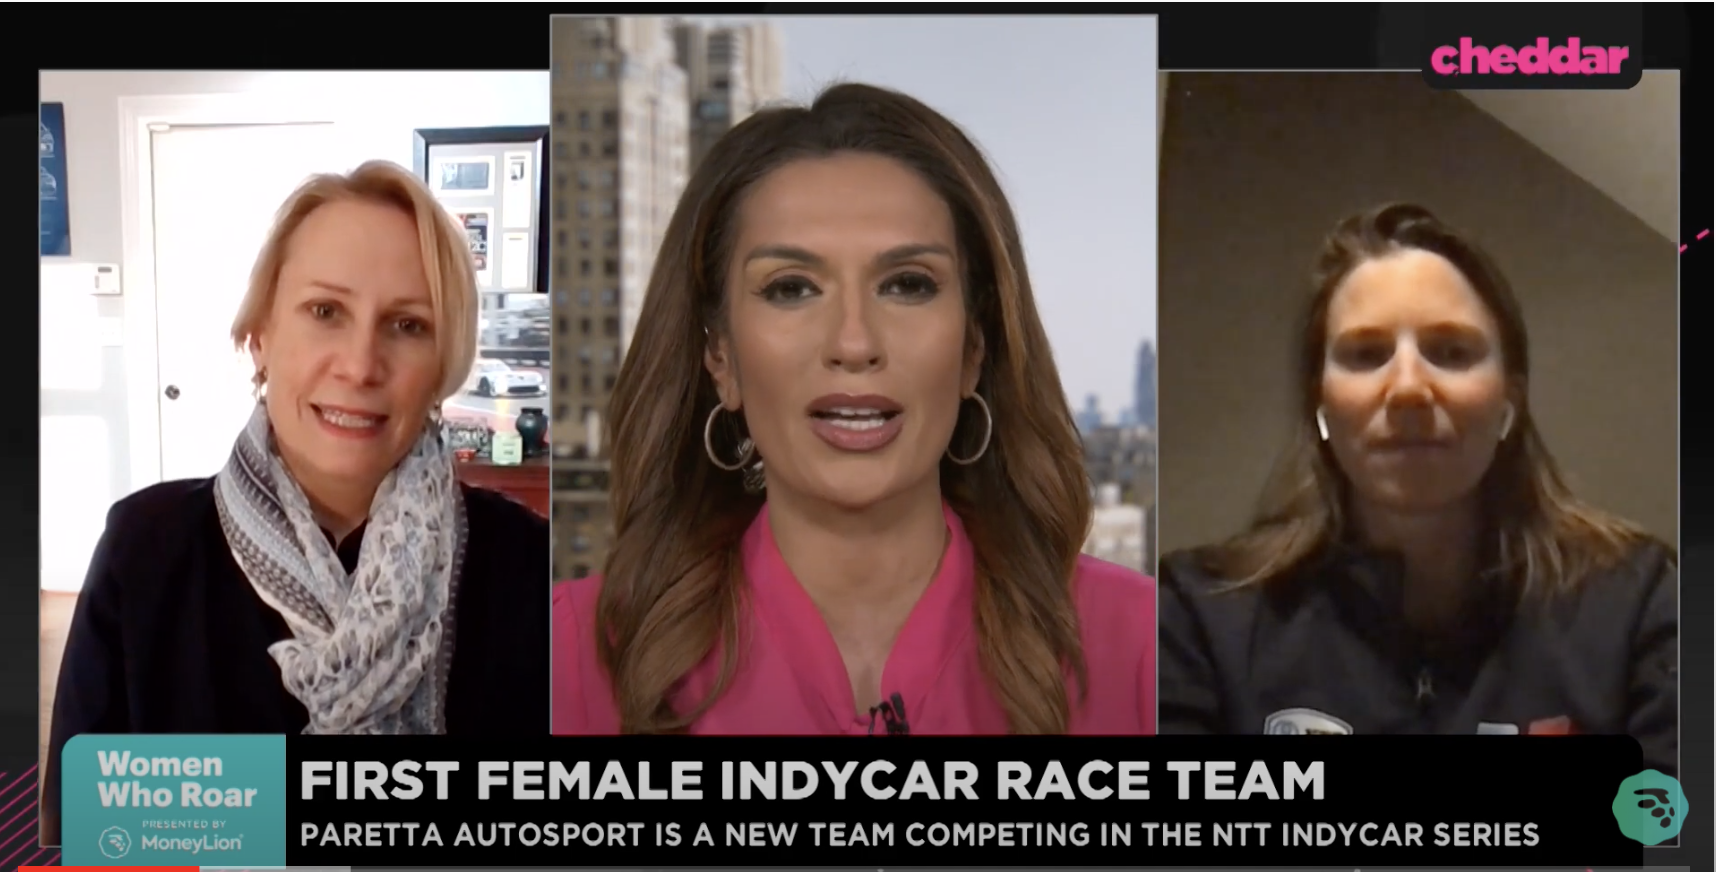 First female indy car team